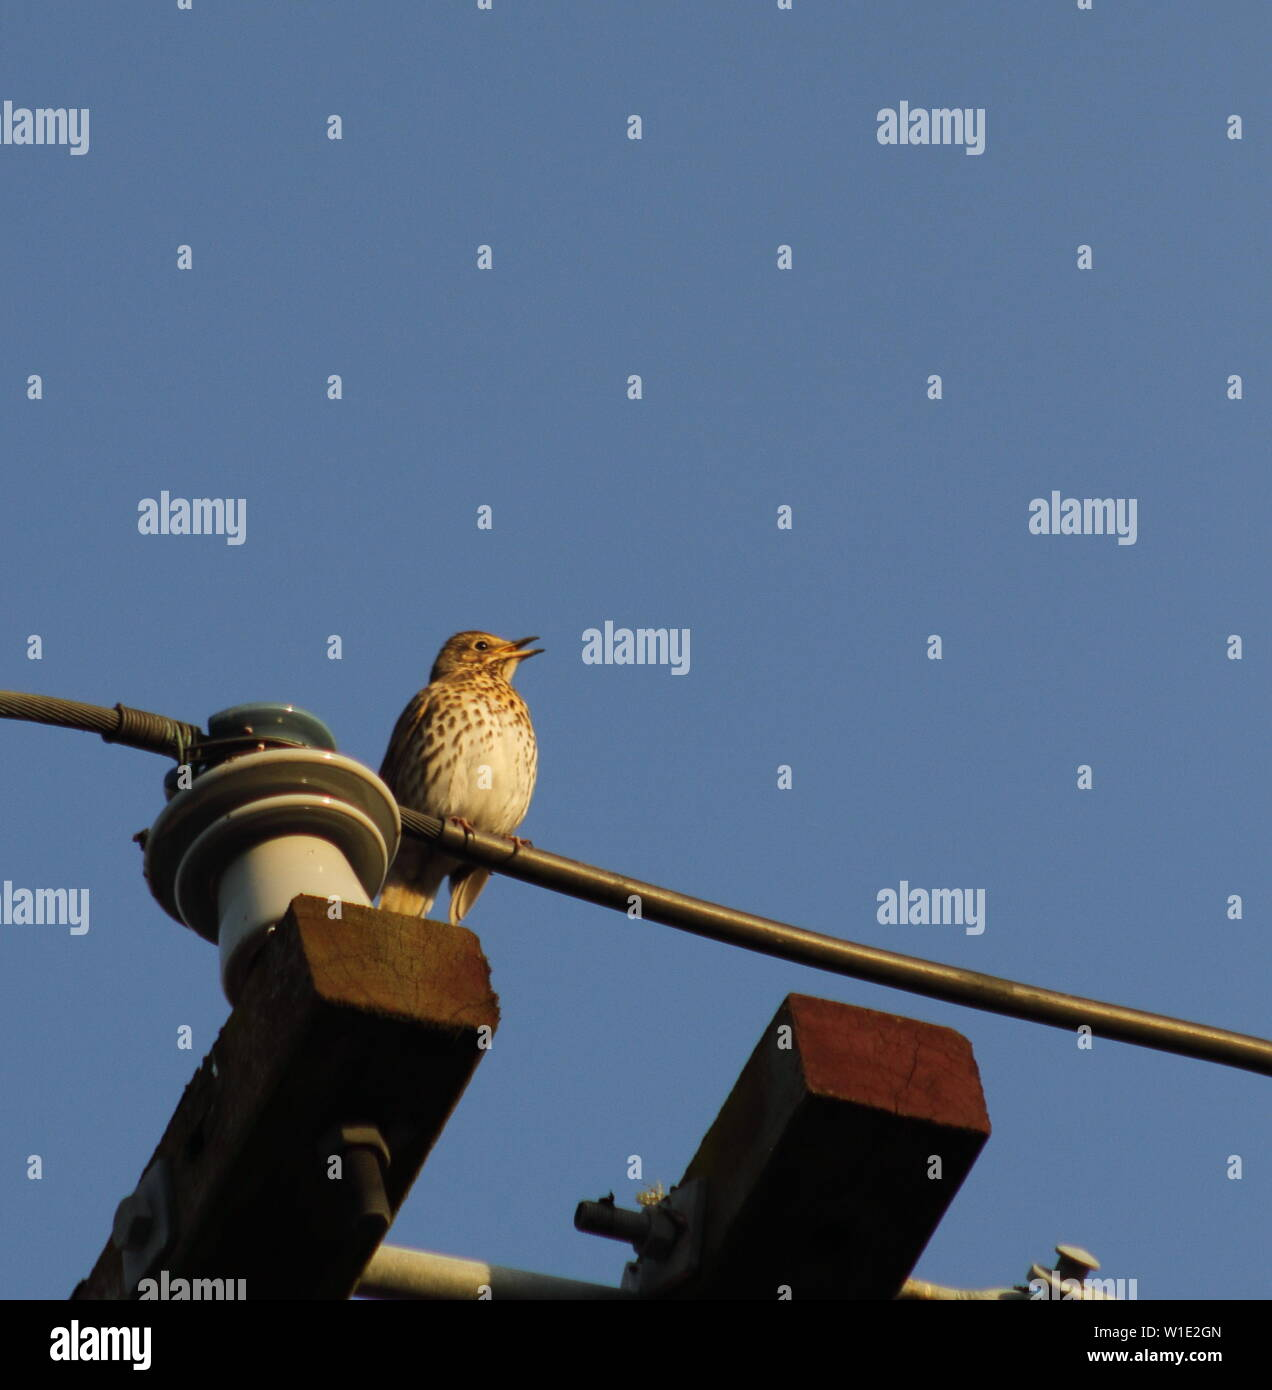 Songthrush on electrical wire Turdus philomelos - Stock Image